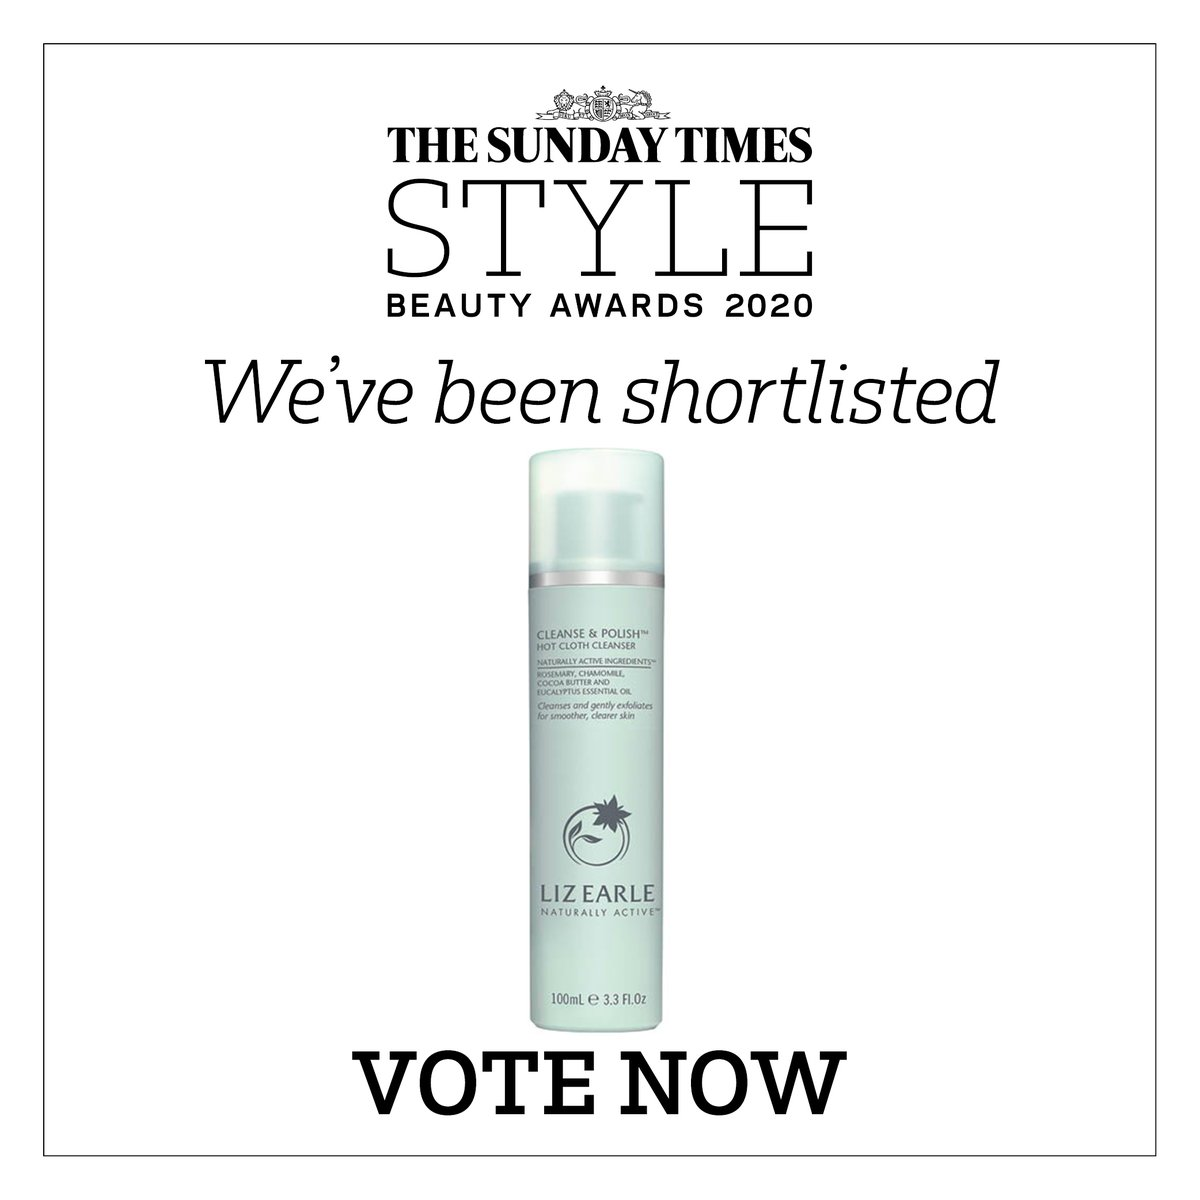 Our classic Cleanse & Polish has been nominated for another award! If you love our icon, we'd be honoured if you'd vote for us as 'Best Cult Product' in The Sunday Times Style Awards 2020. Help us add one more to the trophy cabinet… https://t.co/5qzESUXCUV https://t.co/3MEYPyb6wg